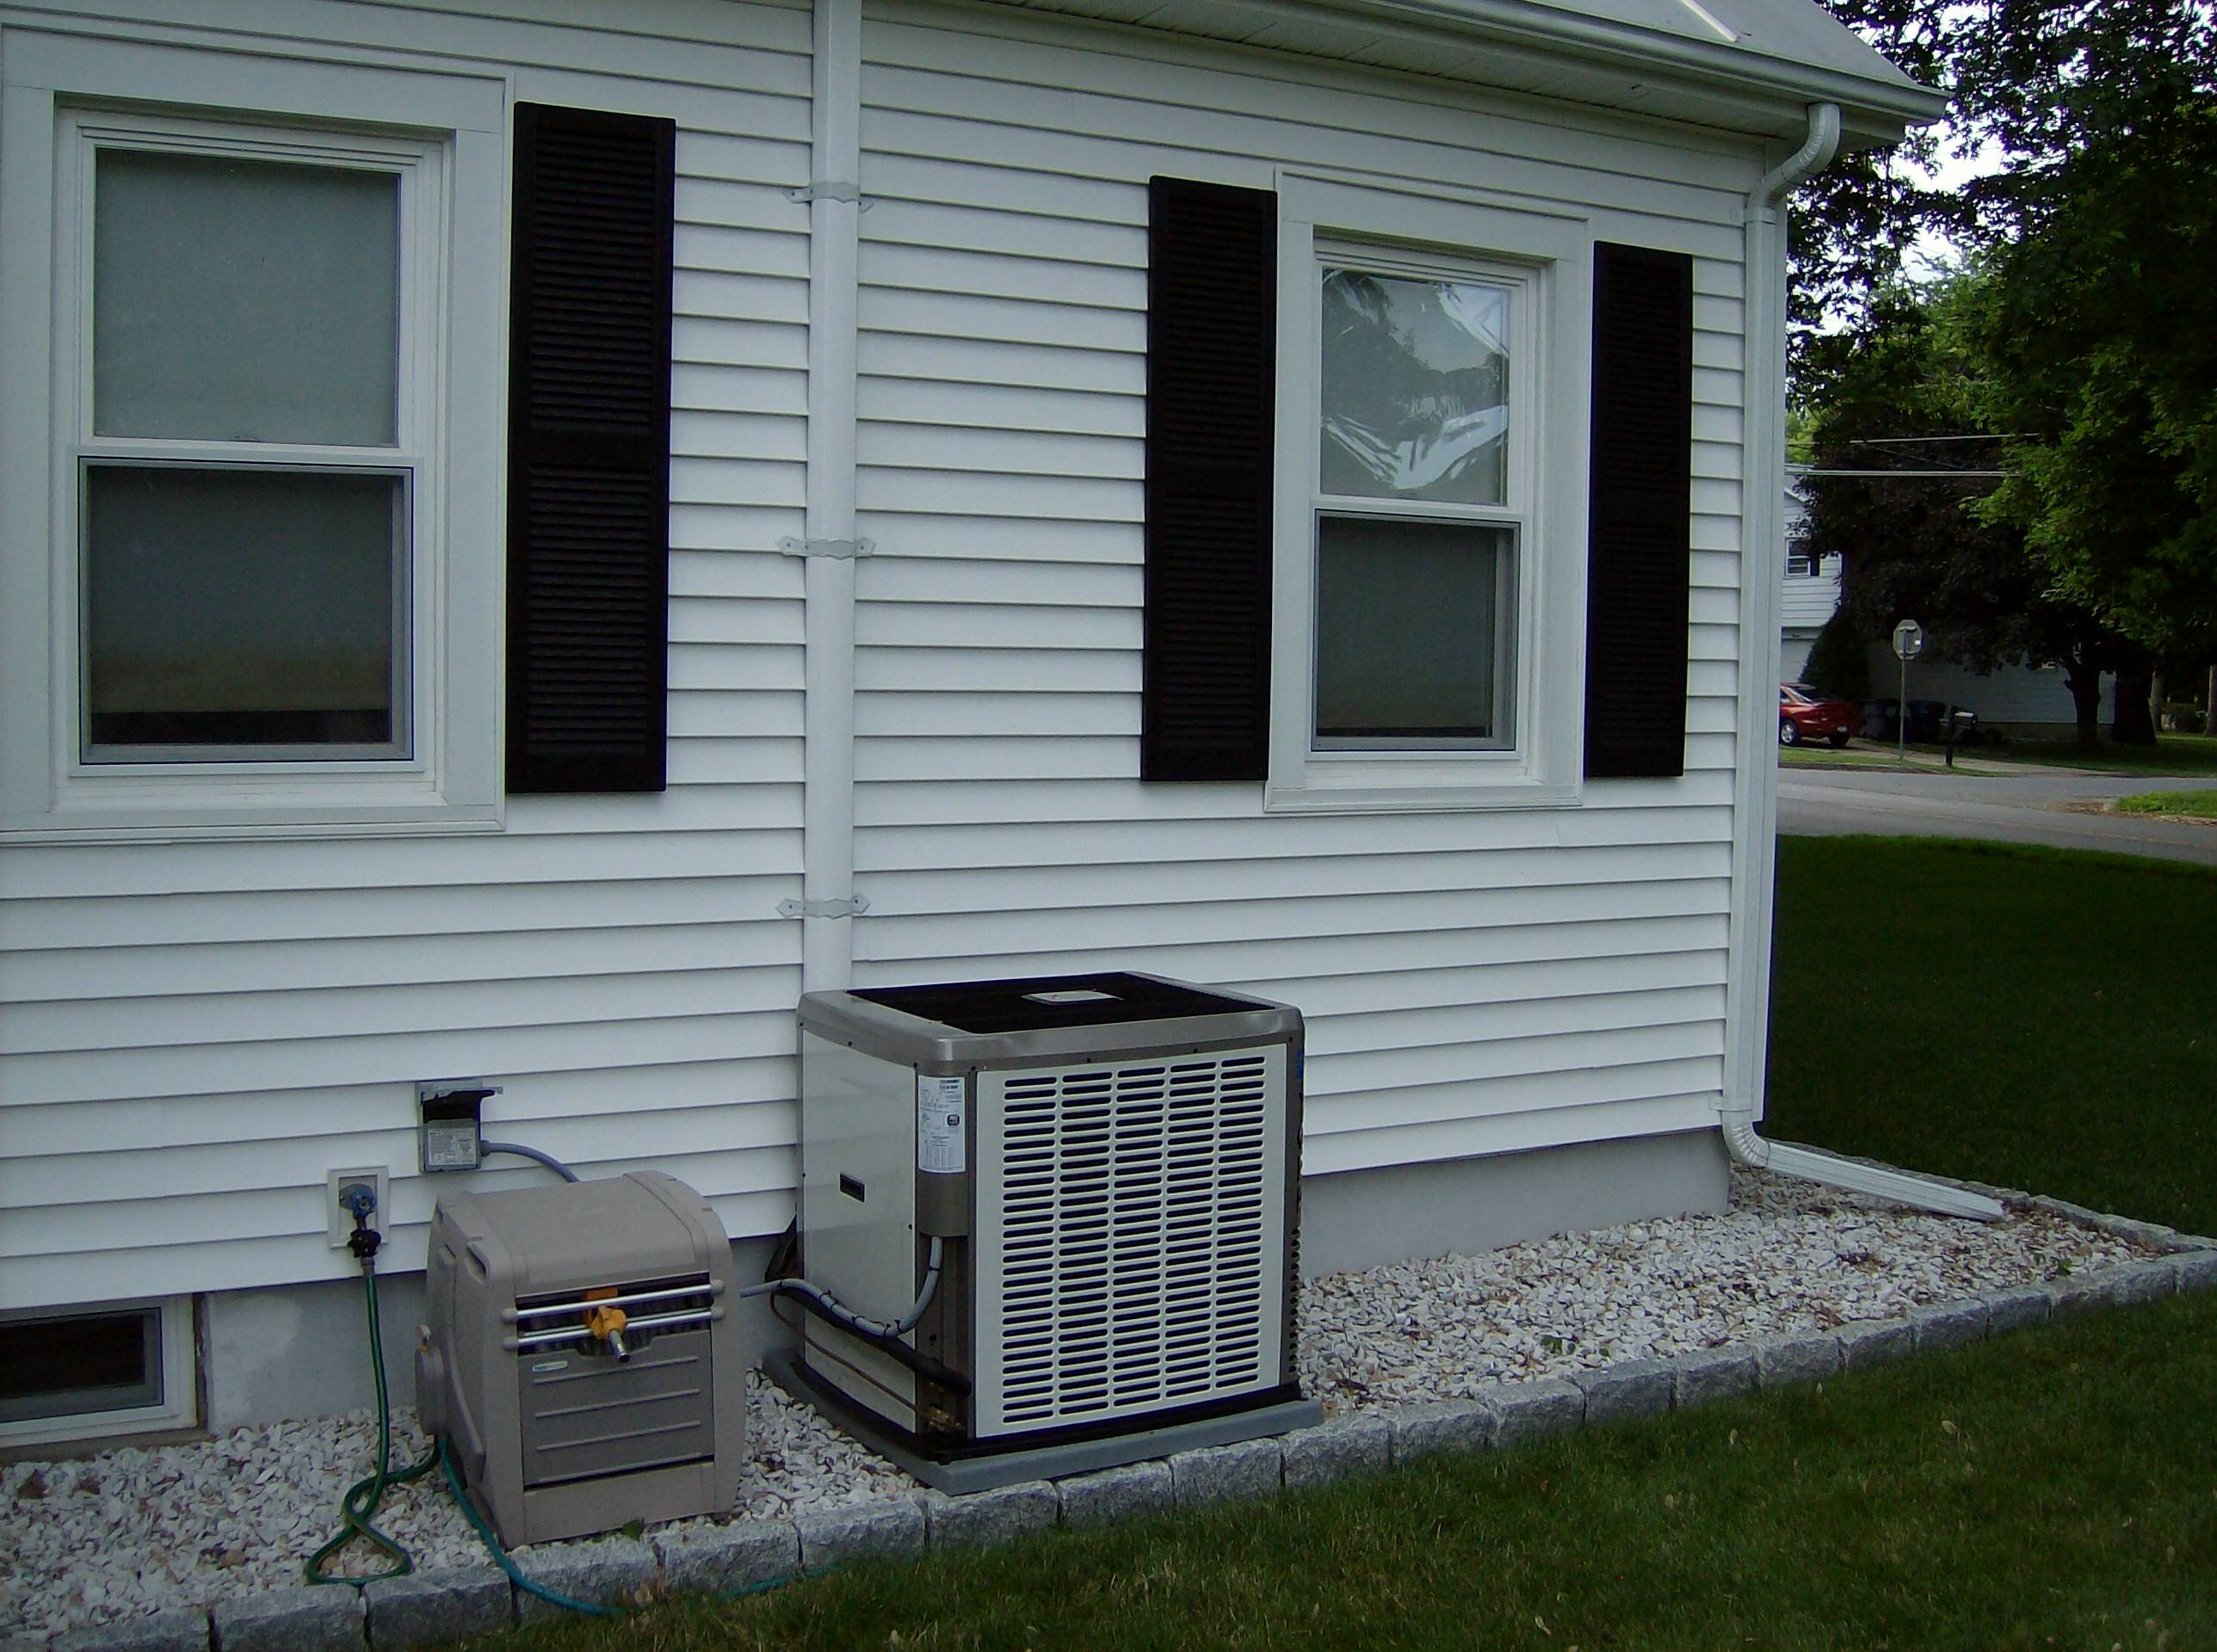 air conditioning maintenance by GA Bove Fuels